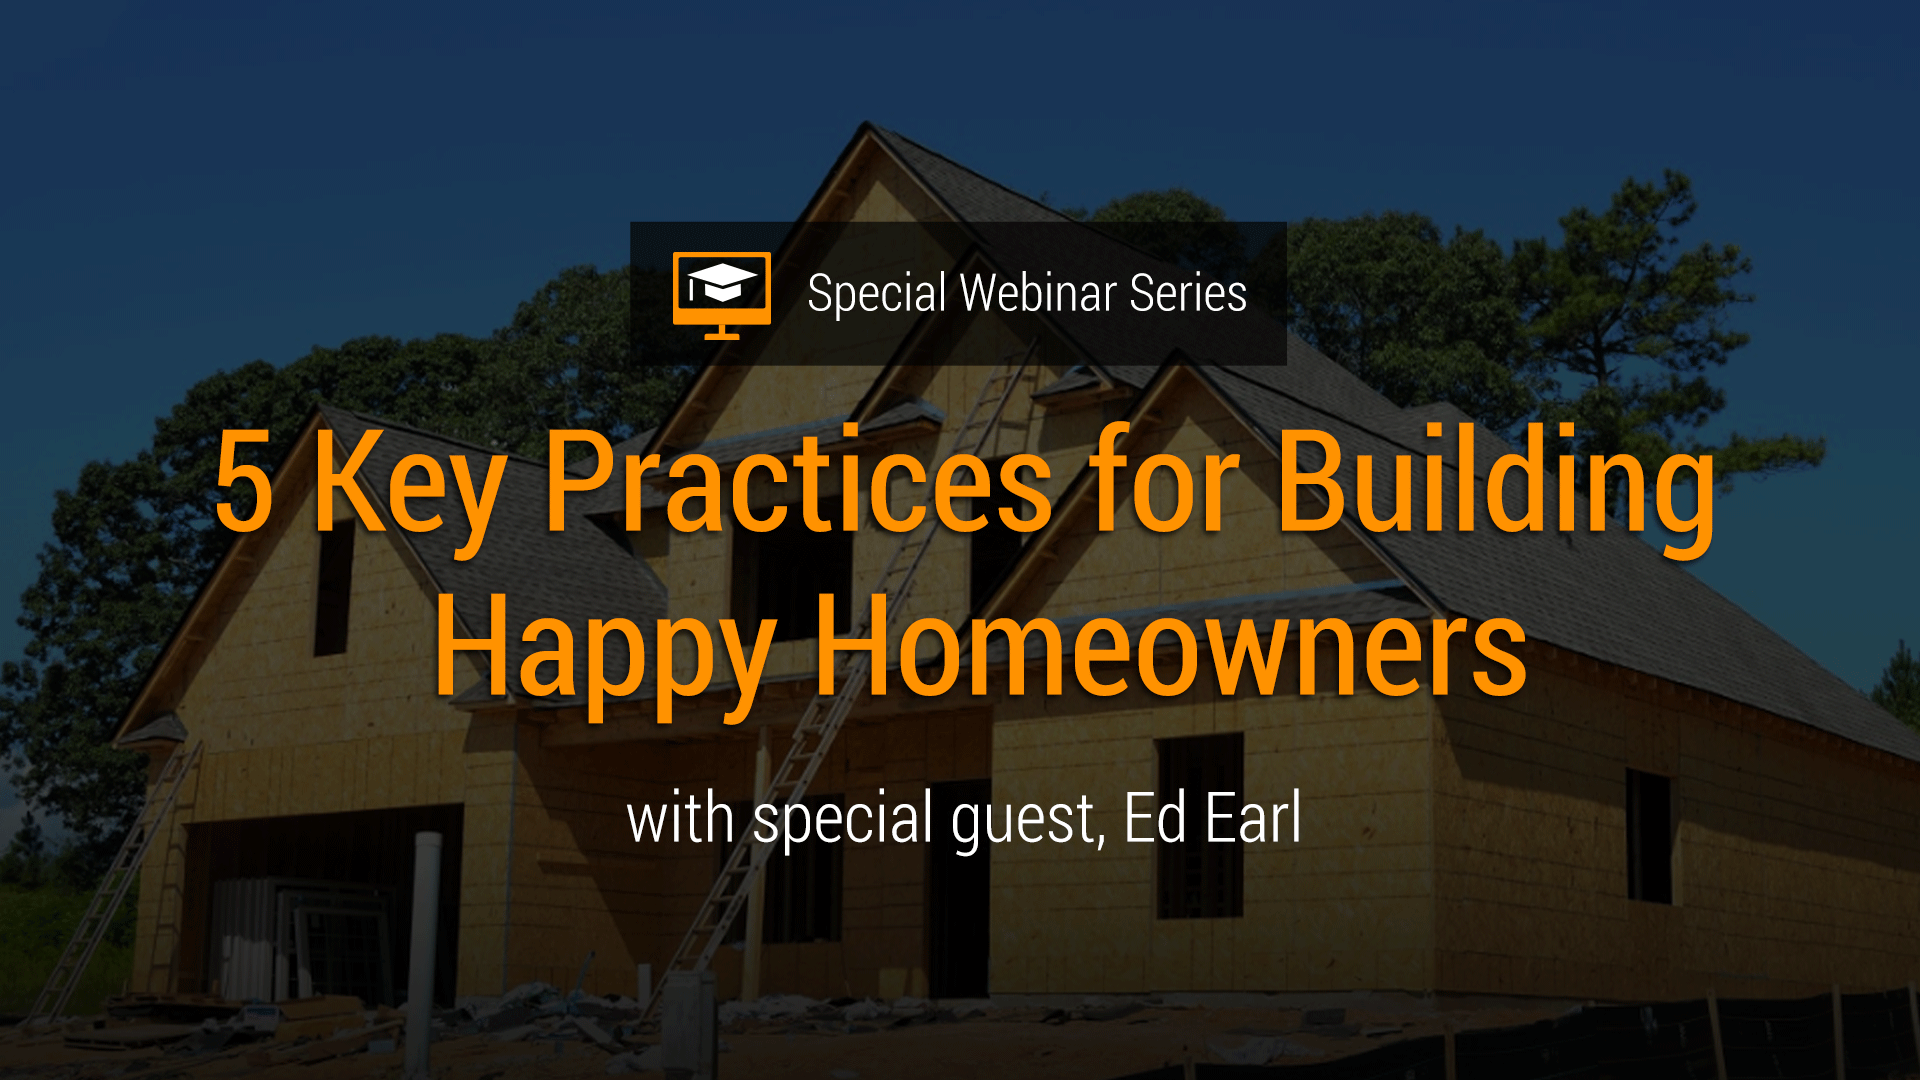 Building Happy Homeowners with Special Guest Ed Earl